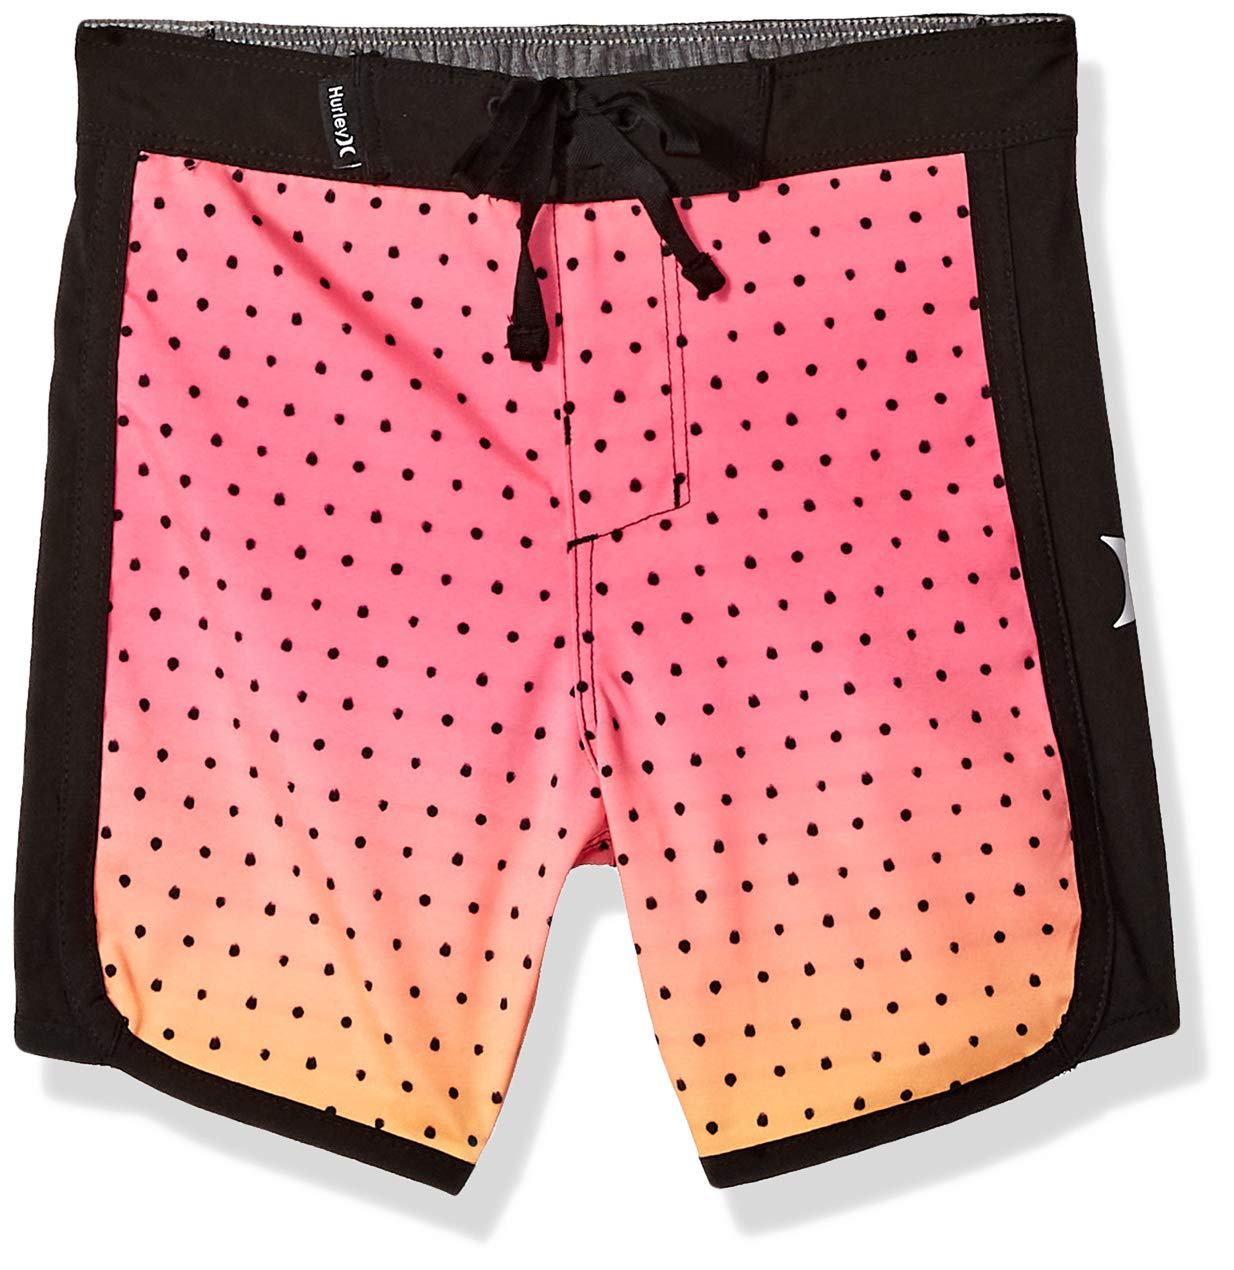 Hurley Toddler Boys' Stretch Board Shorts, Hyper Pink, 3T